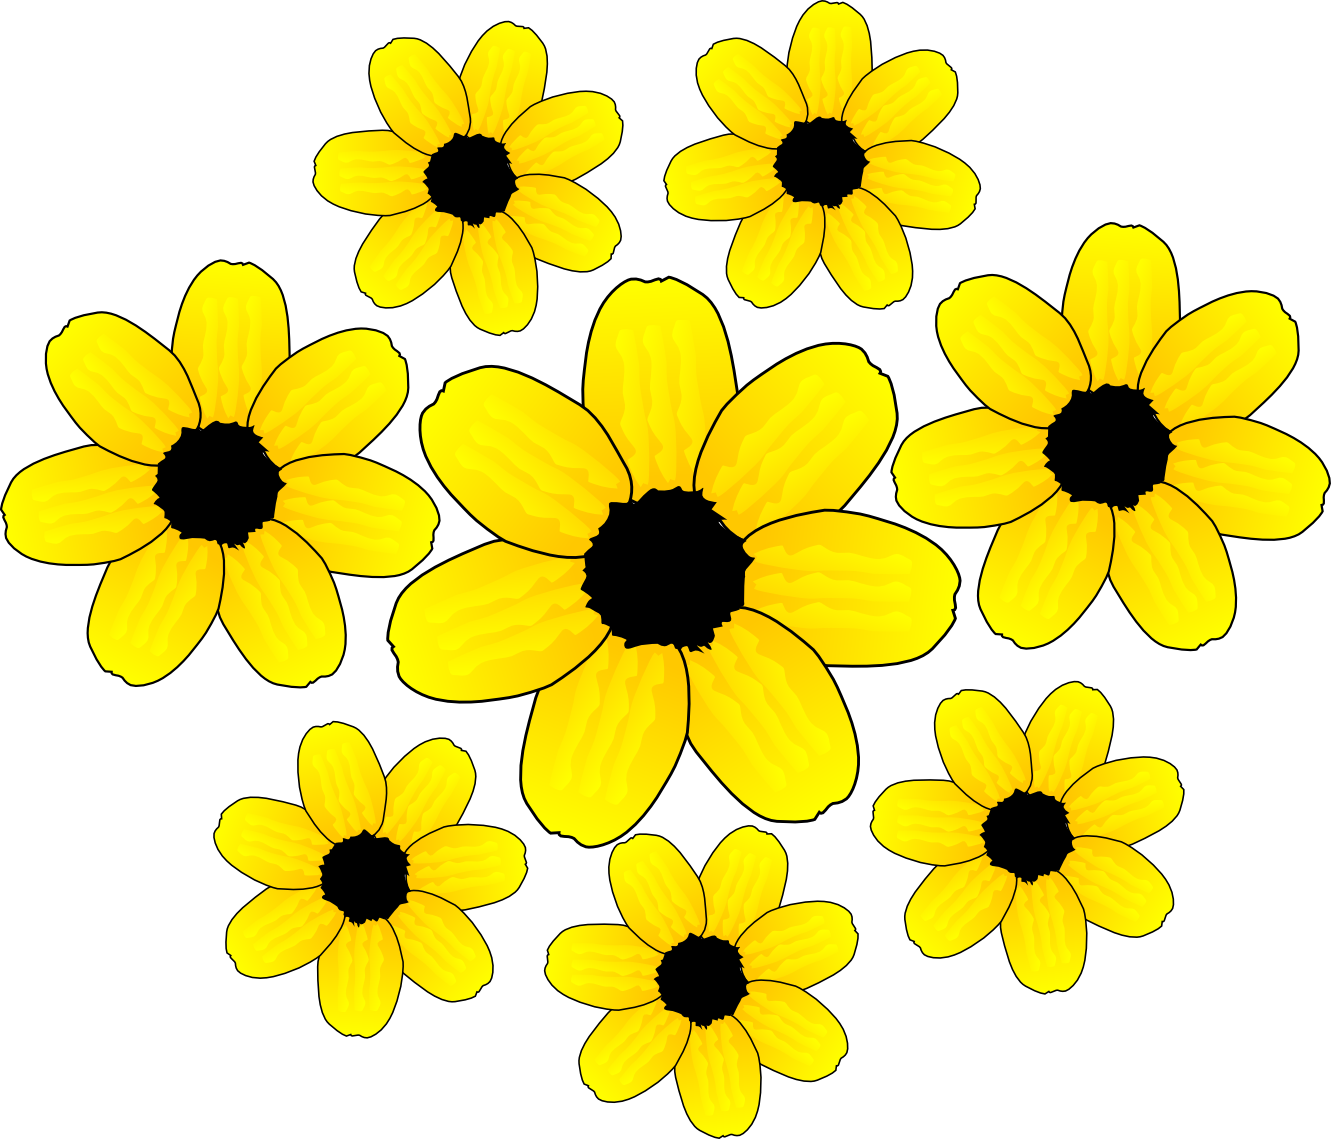 Clipart flower yellow. Flowers accents graphics the